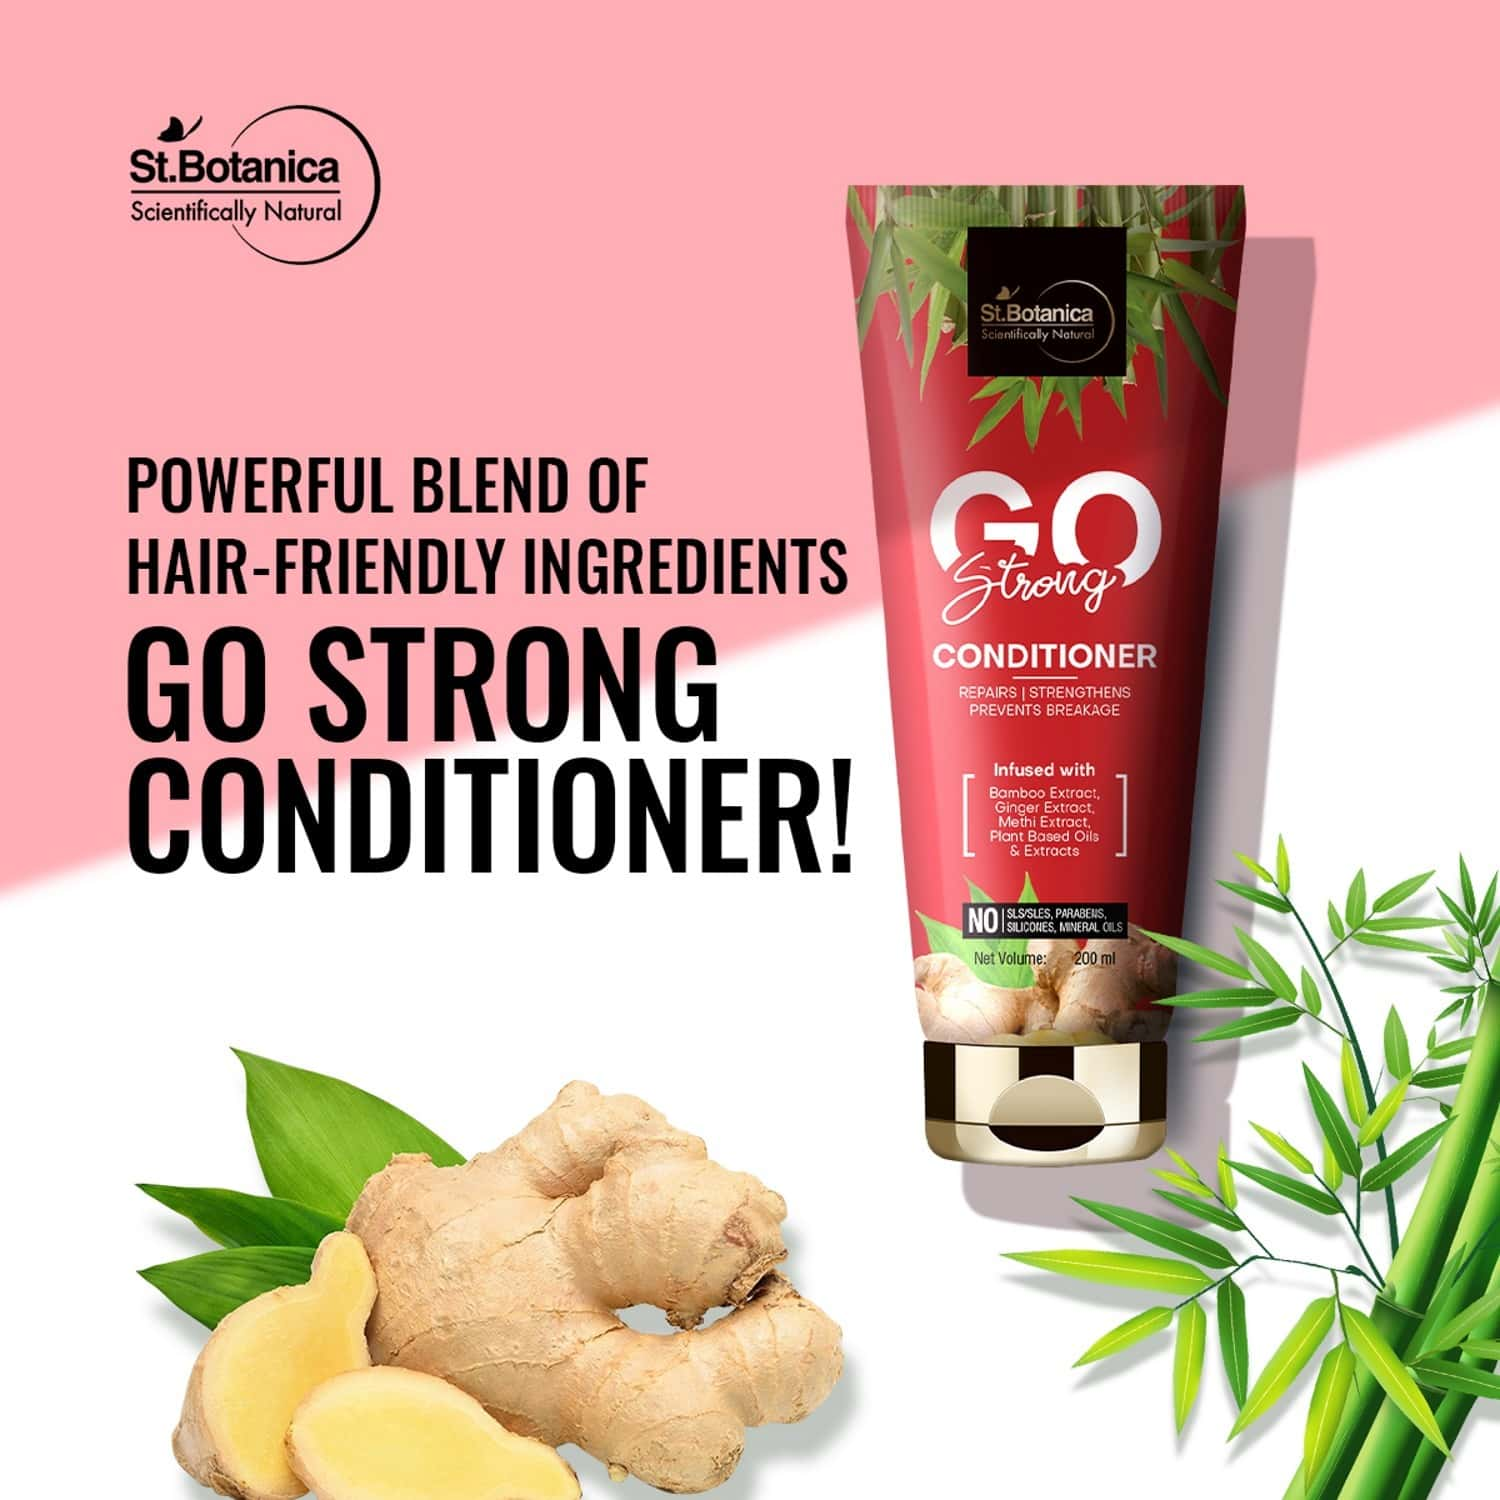 St.botanica Go Strong Hair Conditioner - With Bamboo Extract, Ginger Extract, Methi Extract, No Sls/sulphate, Paraben, Silicones, Colors - 200 Ml